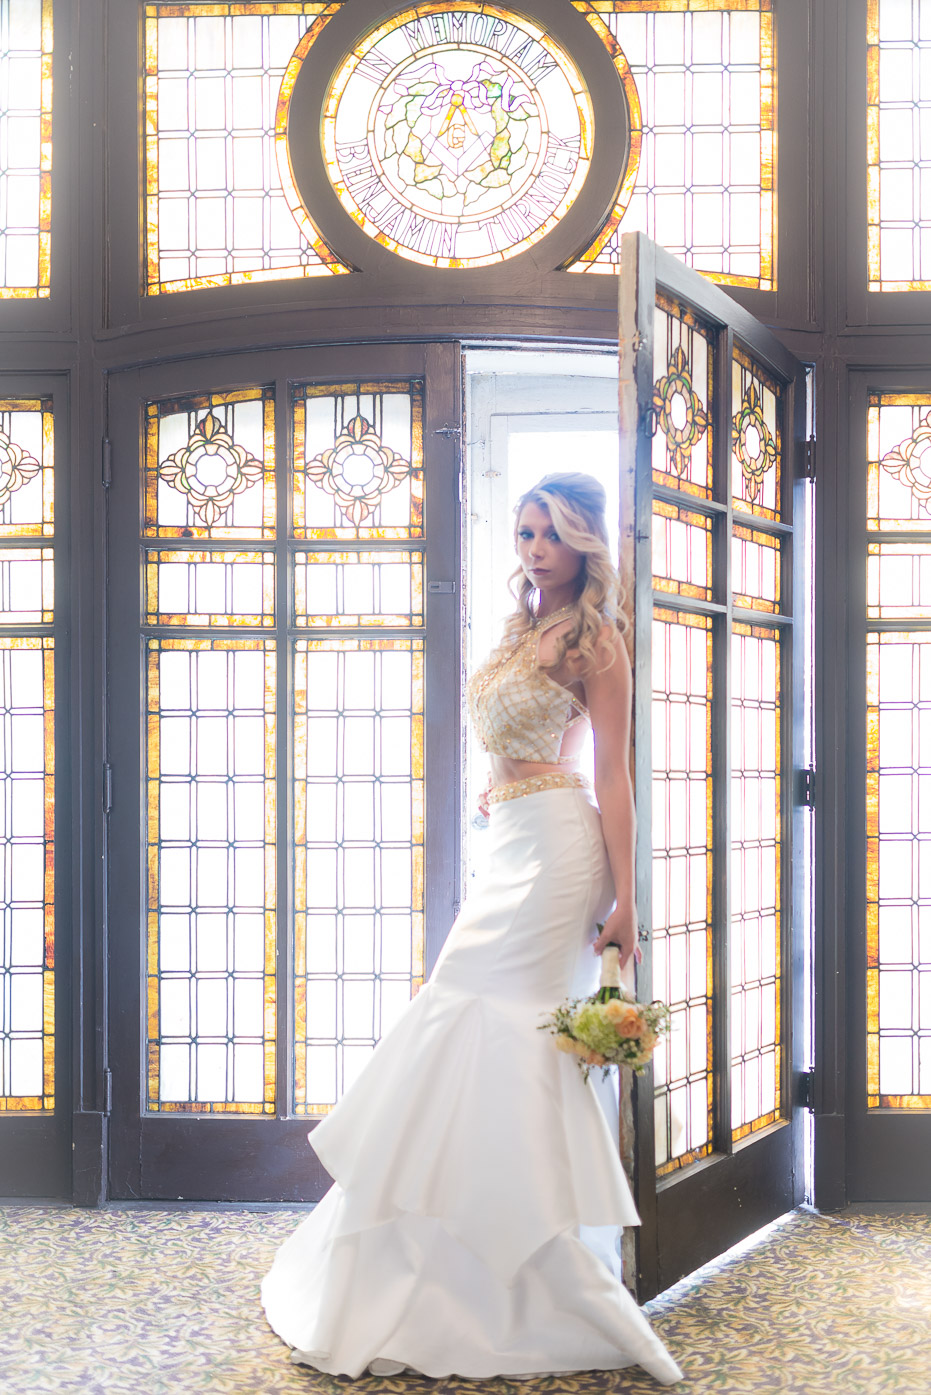 Stunning bride with bouquet with stained glass